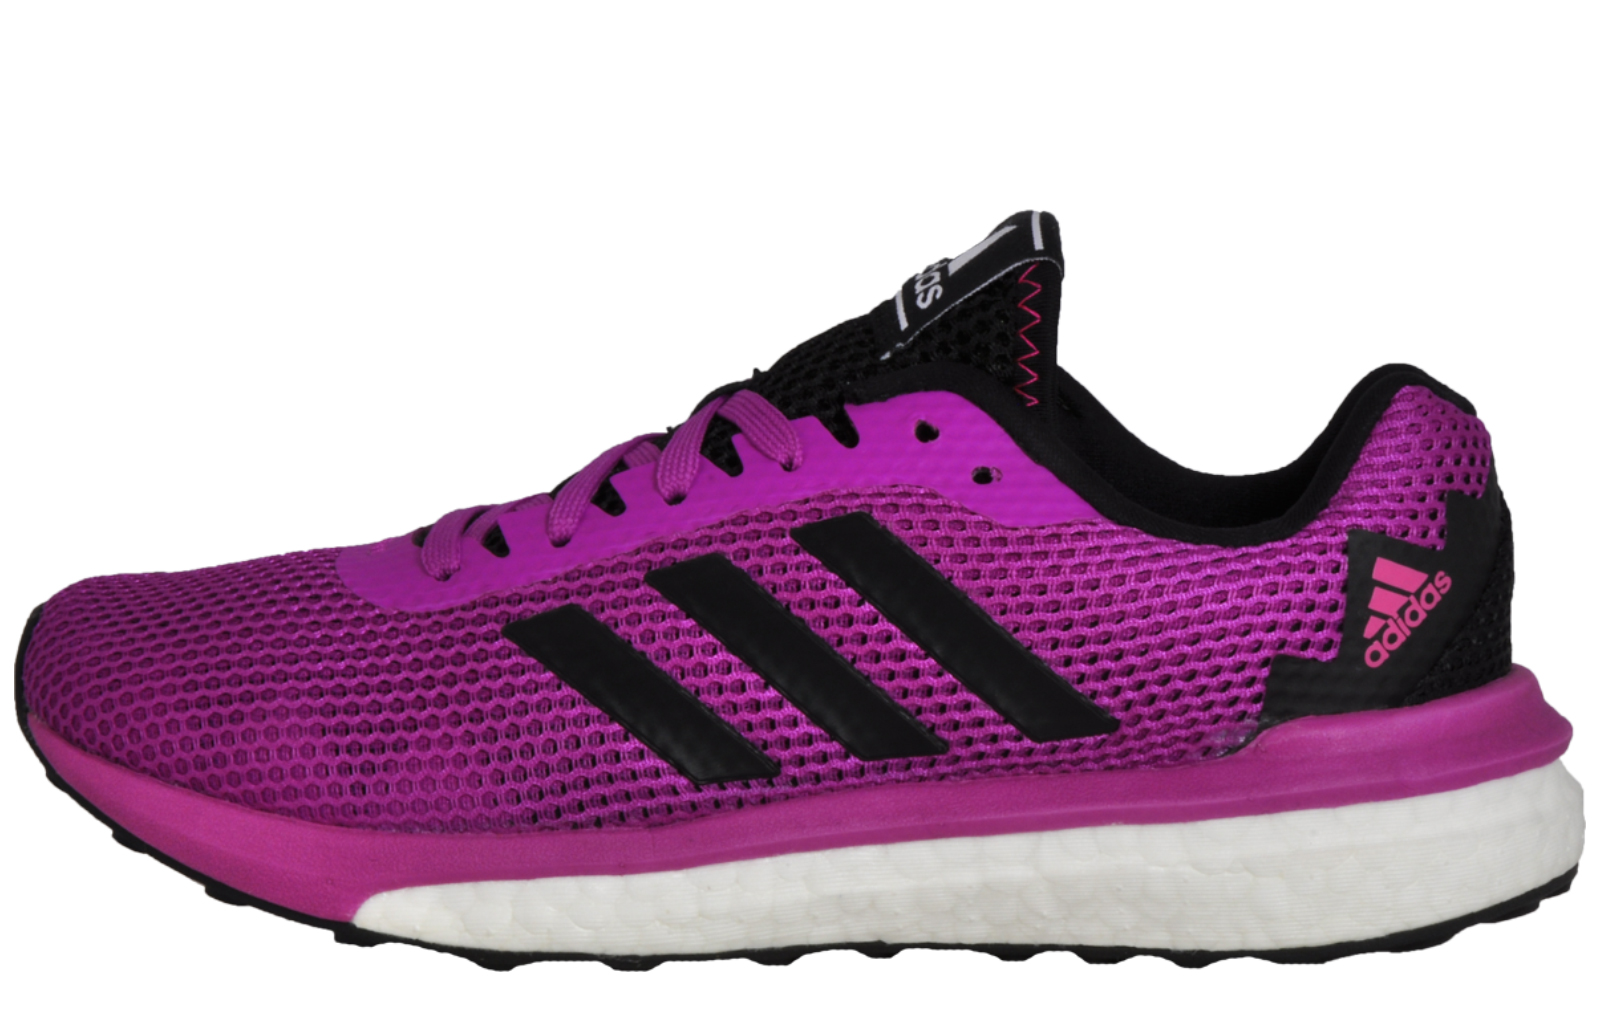 Adidas Vengeful Boost Women's Running Shoes Fitness Gym